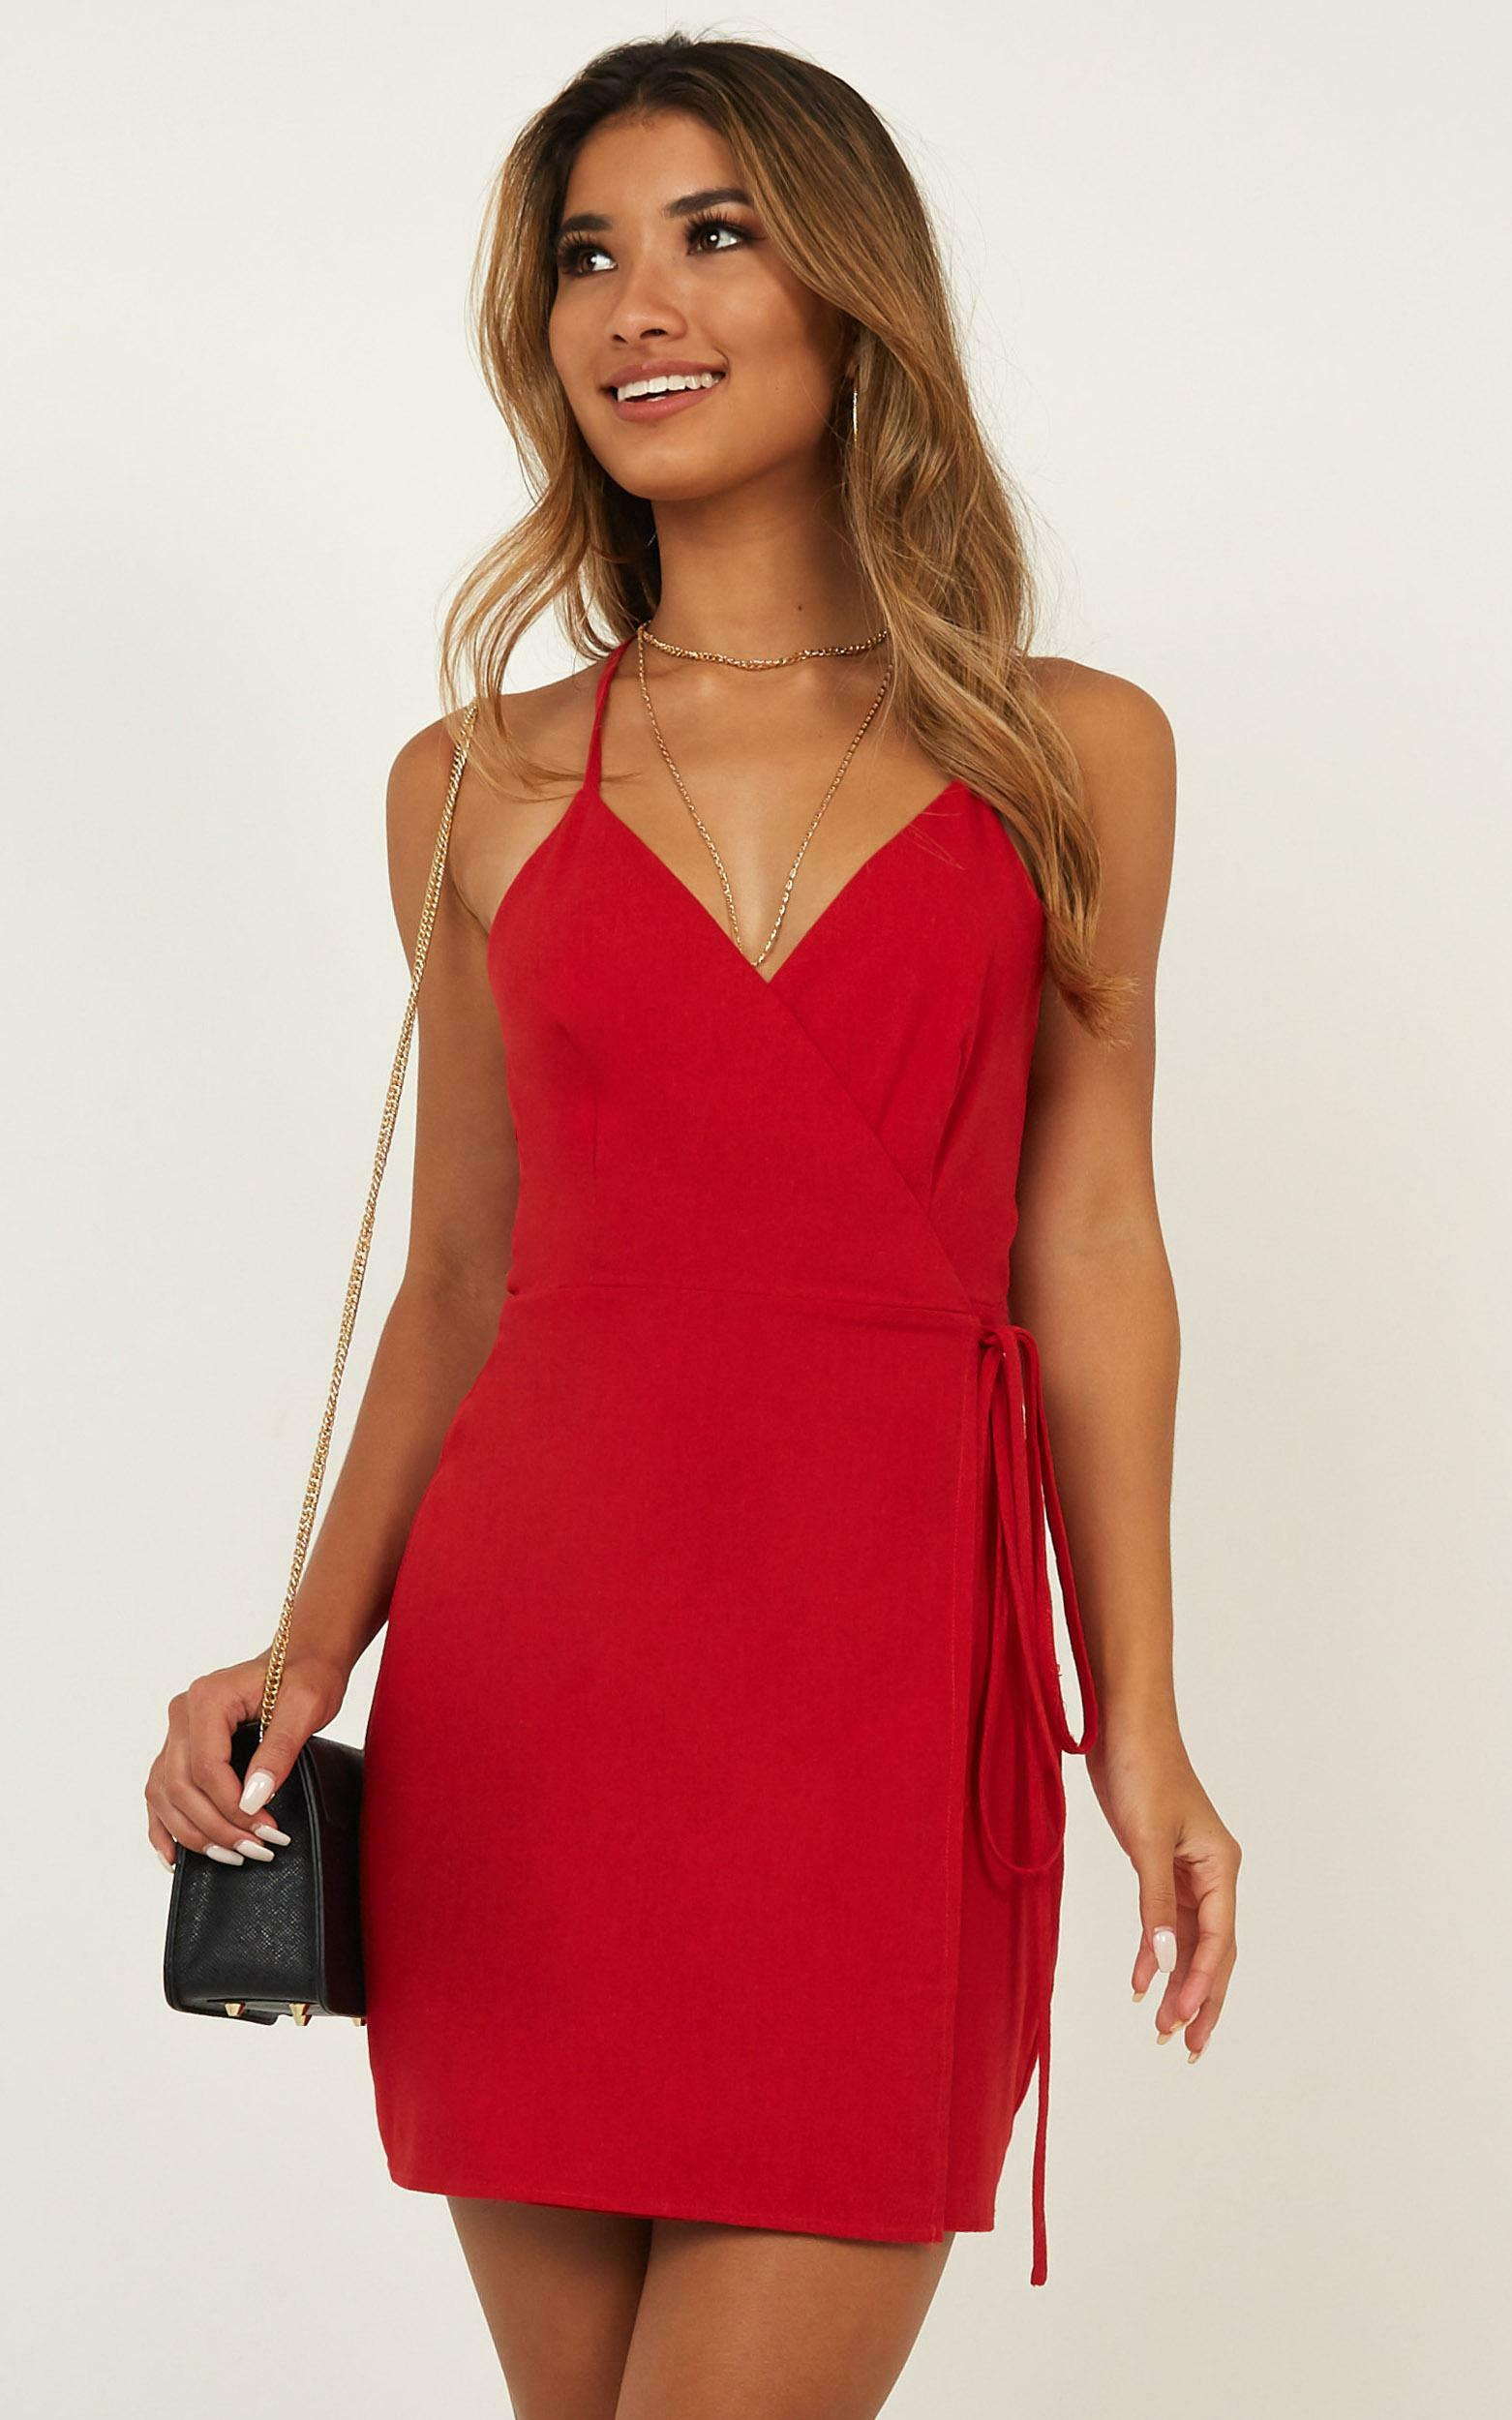 Whisper it Dress in red linen look - 20 (XXXXL), Red, hi-res image number null